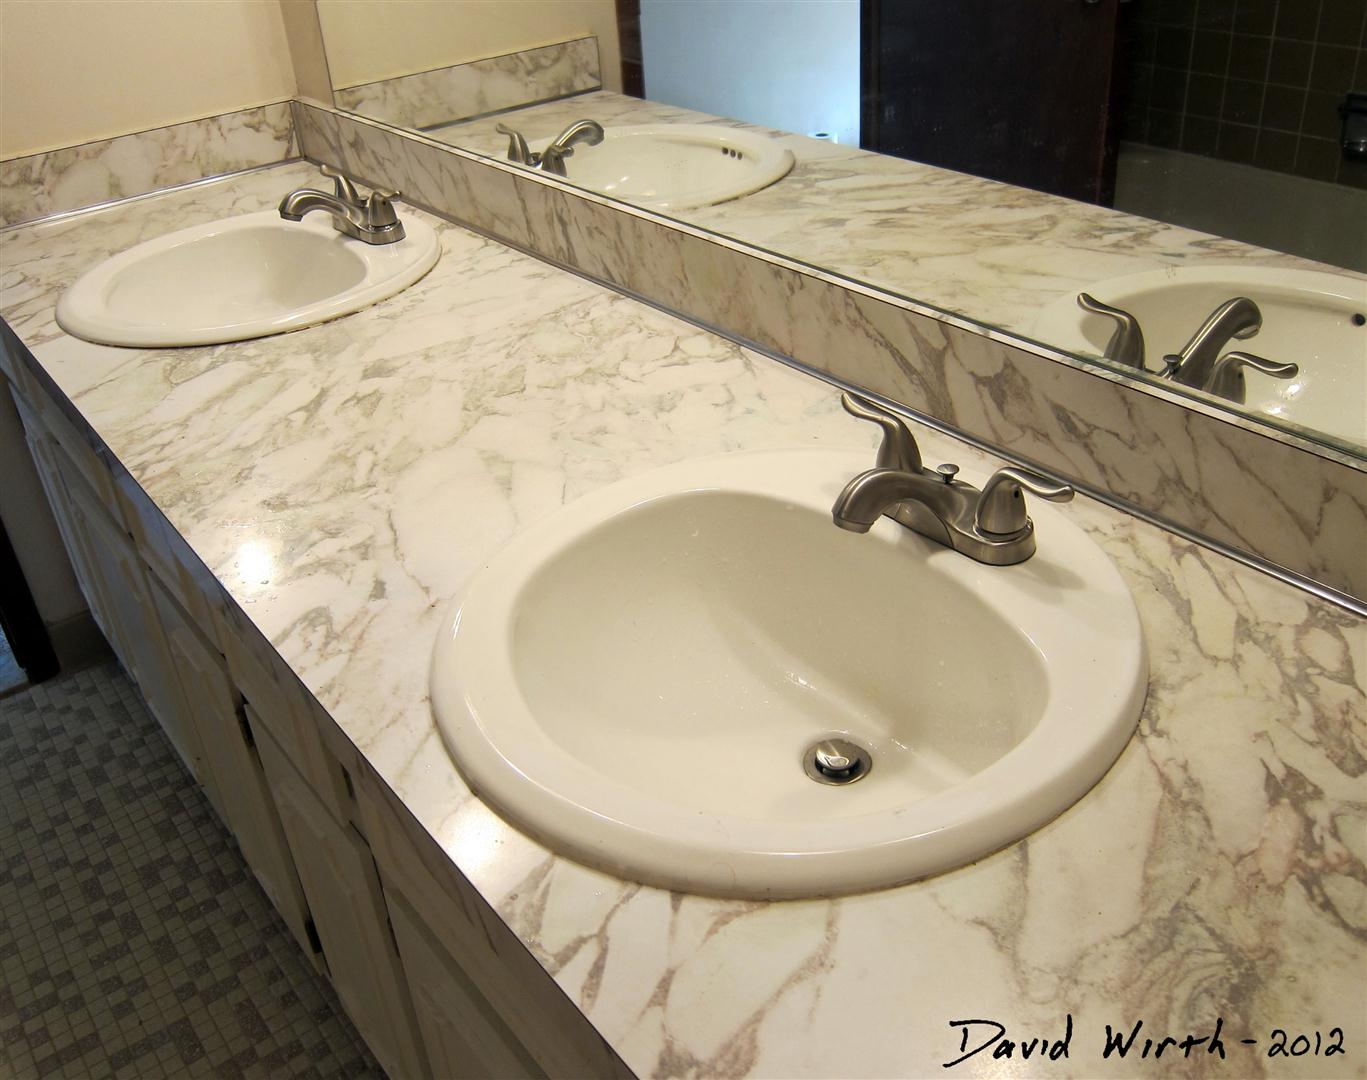 Replace Bathroom Sink : new bathroom faucet, how to replace an old bathroom faucet, repair